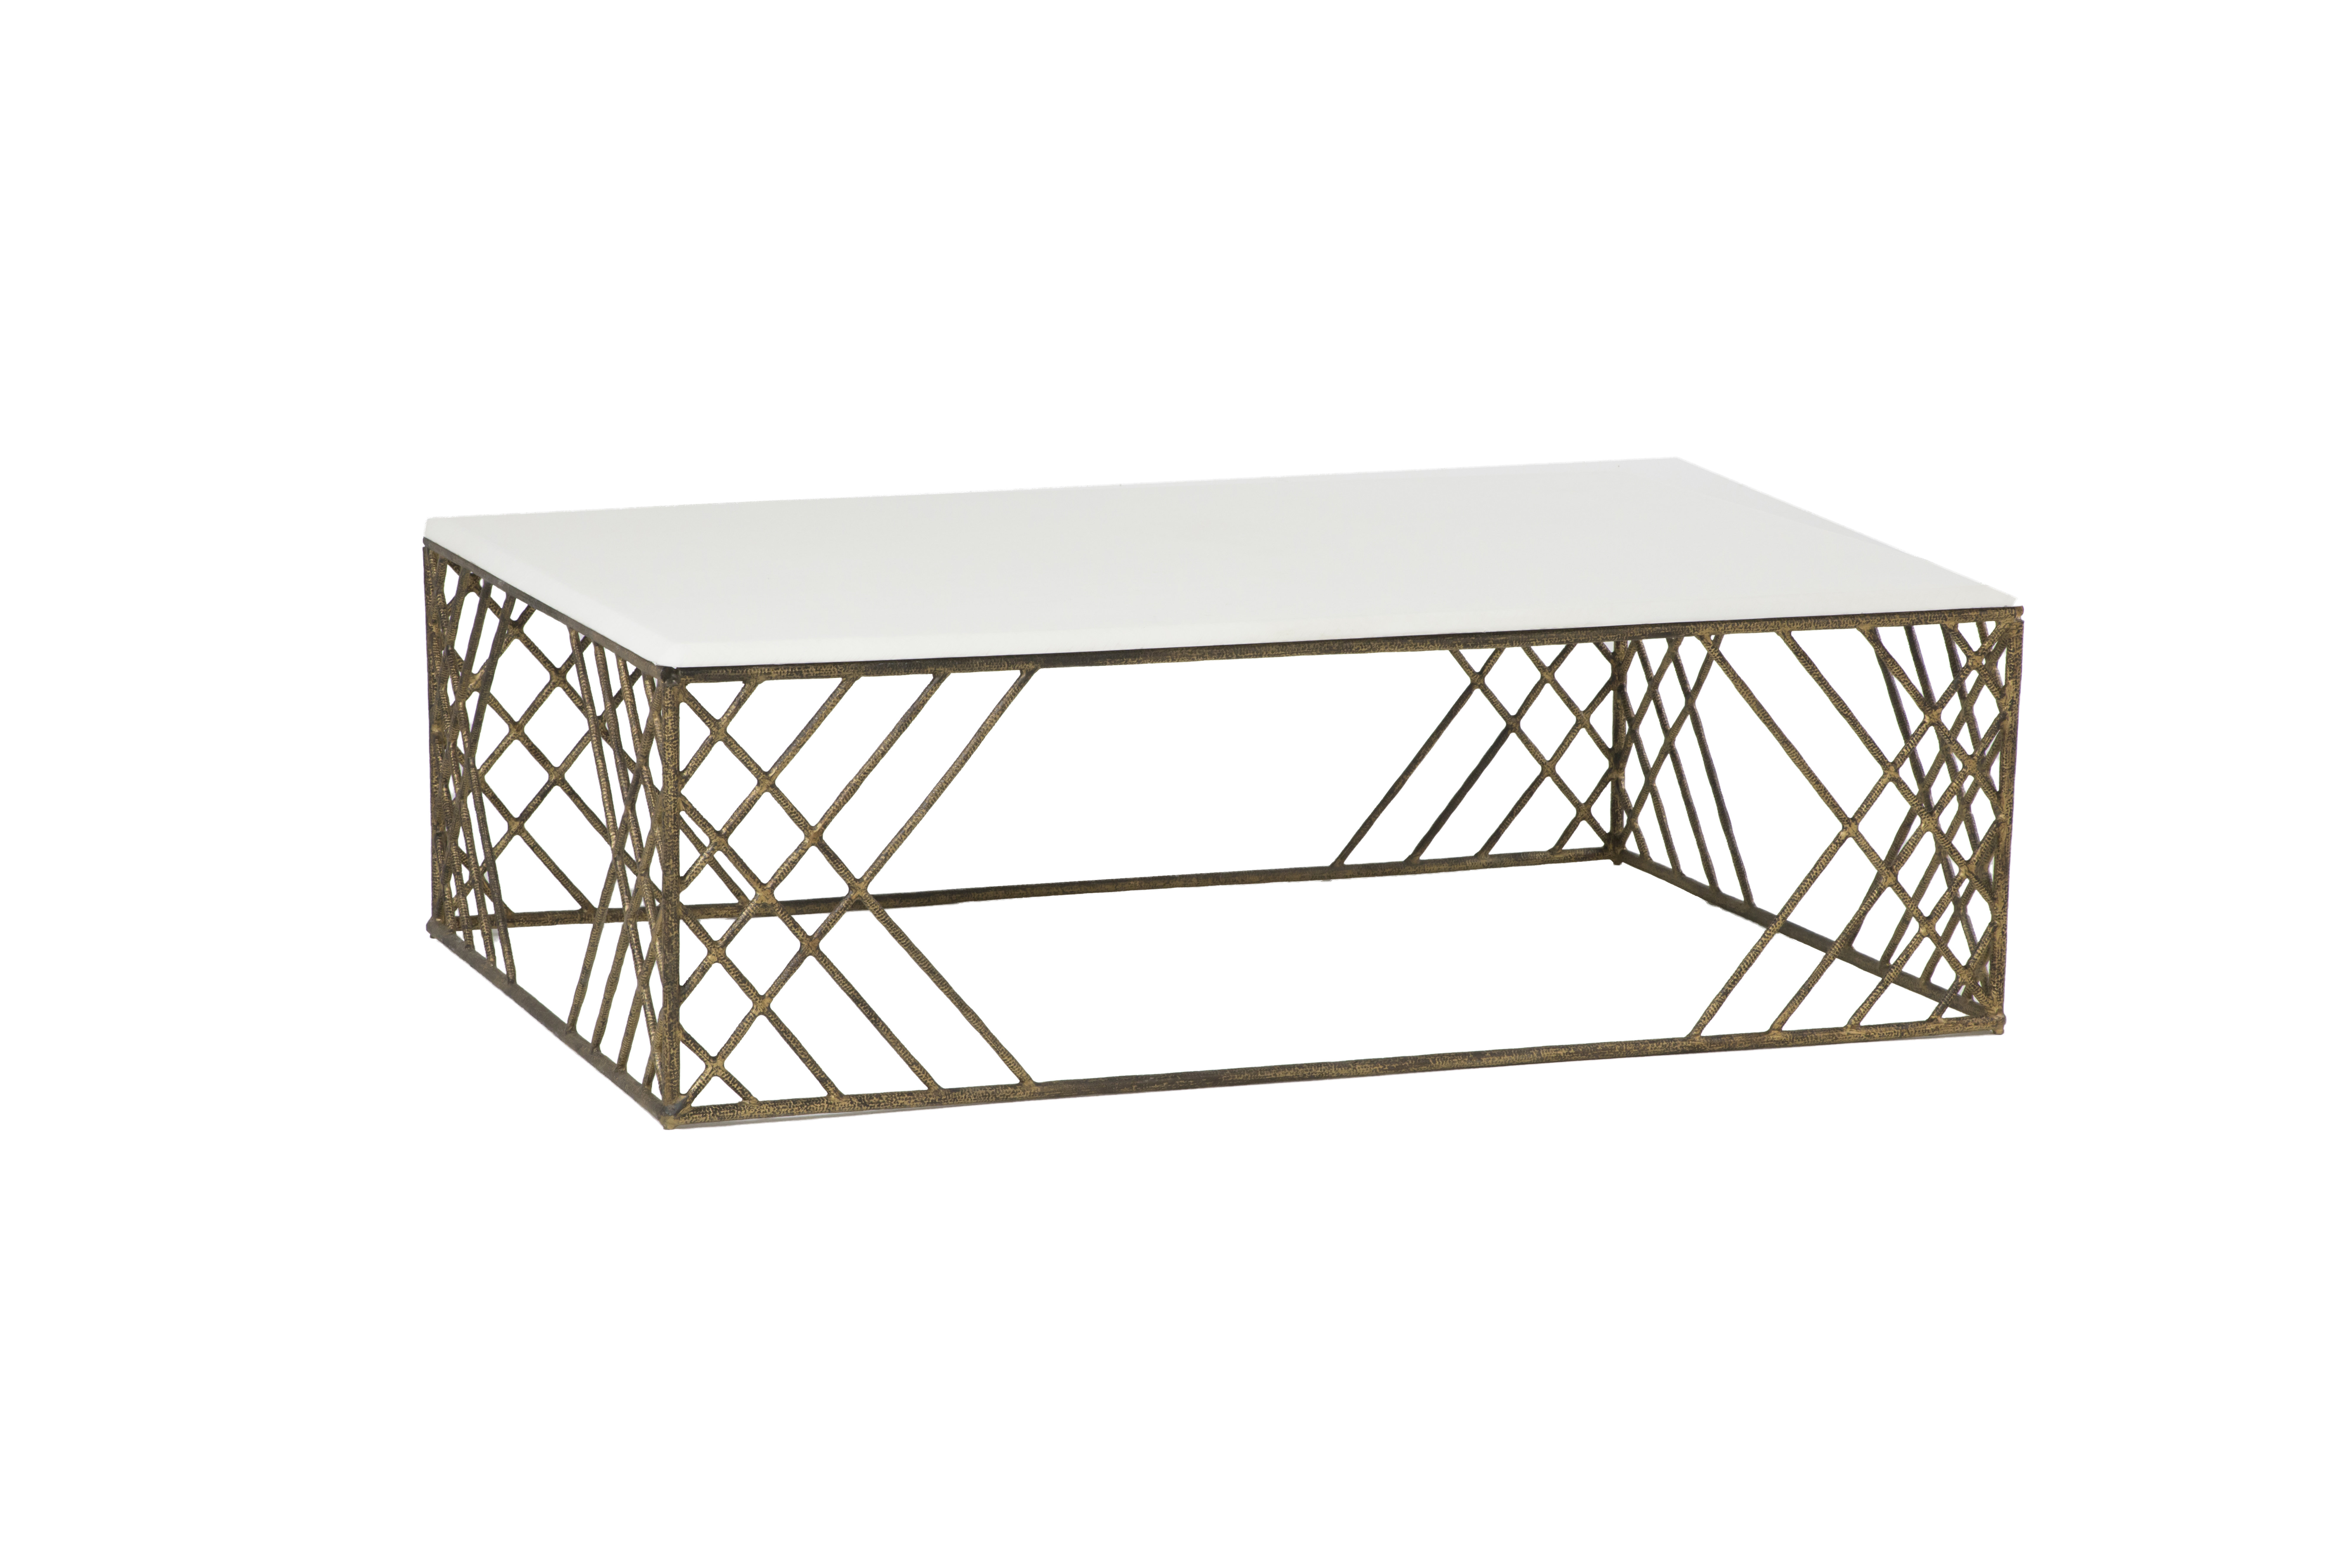 Gab Cassidy Coffee Table Reviews Wayfair inside dimensions 7952 X 5304